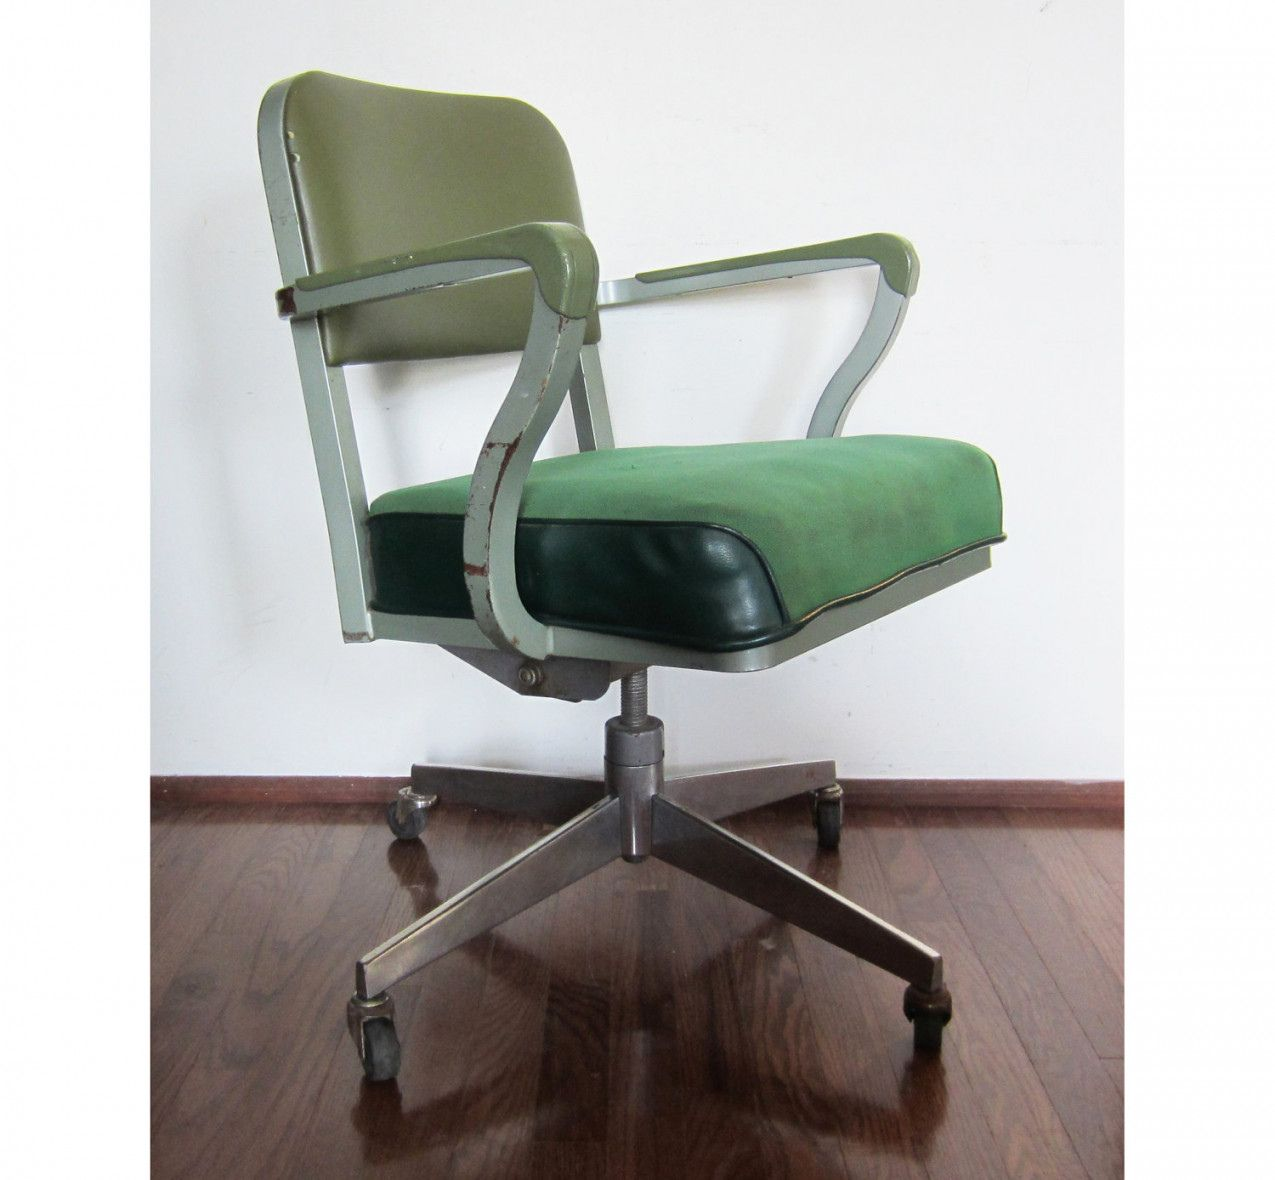 steelcase office chair best modern furniture check more at httpsteelbookreviewcom70 vintage steelcase office chair best paint for furniture - Steelcase Office Chairs